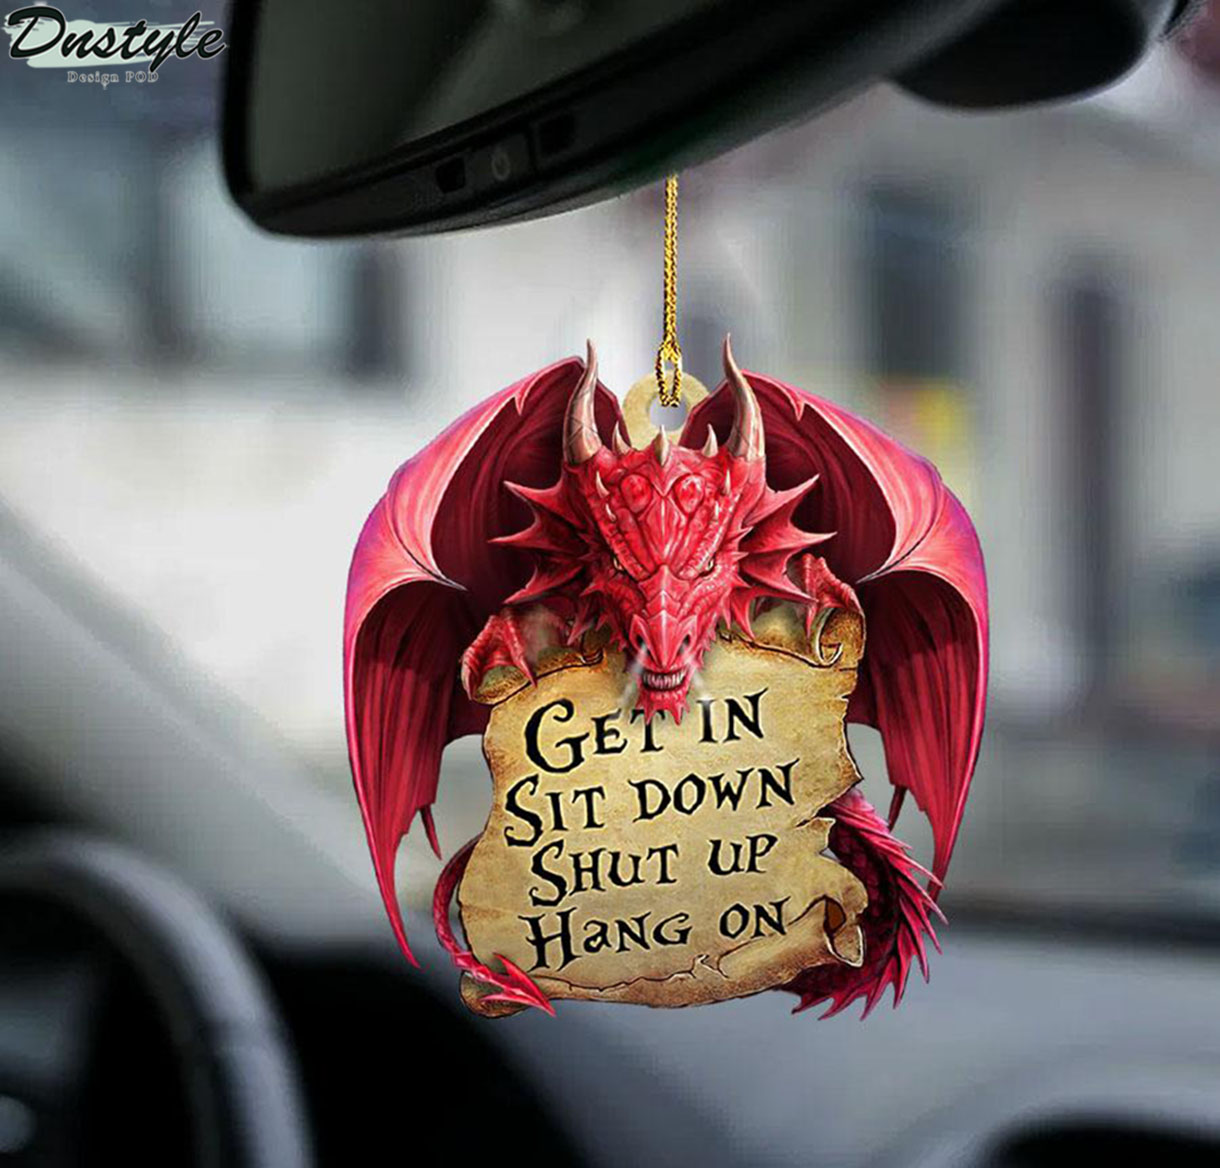 Dragon get in sit down shut up hang on ornament 2